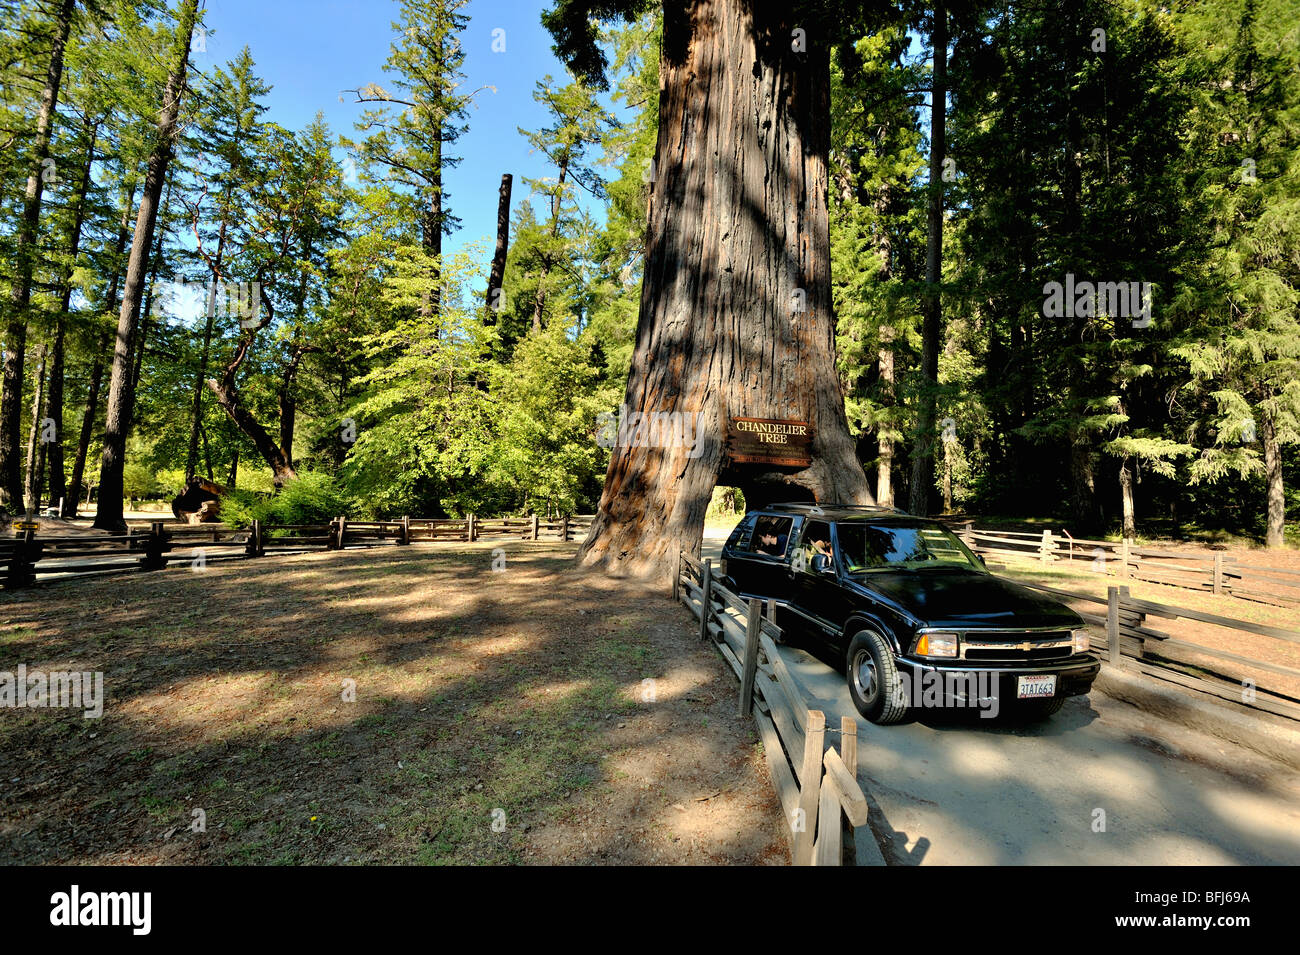 Chandelier tree in the coastal Redwood forests of north California, USA - Stock Image